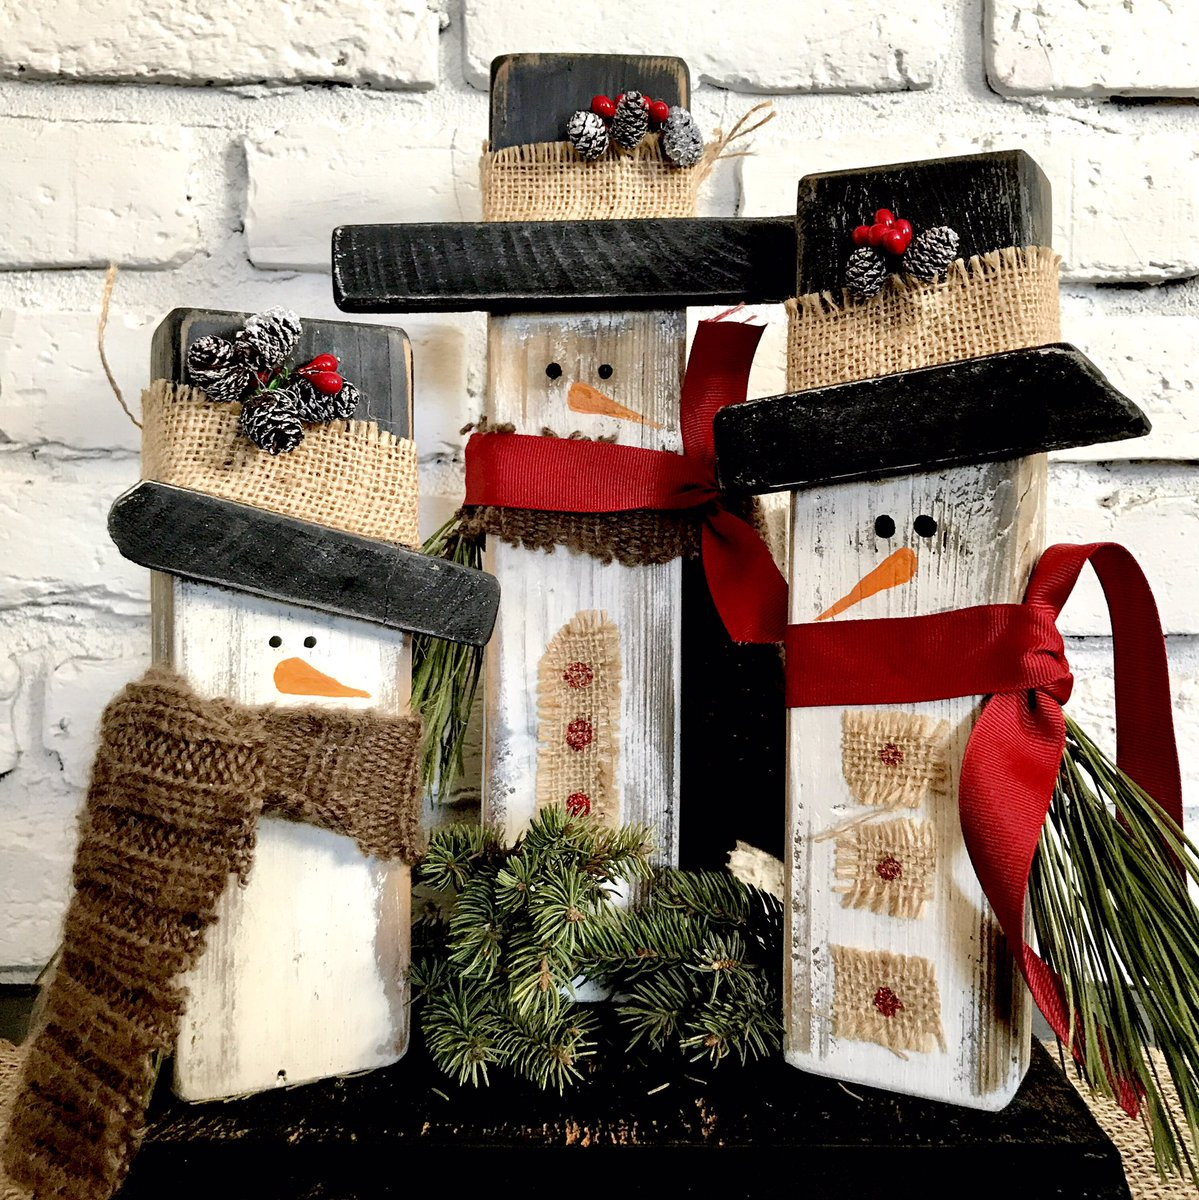 So far I&#39;ve found about 20 different ways to make rustic snowmen! Working on another 20  https://www. etsy.com/listing/573216 291/wooden-snowman-decorwood?ref=shop_home_active_2 &nbsp; …  #SnowMan #Christmas2017 #Christmasgifts #etsygifts #giftsforher #handmade #homedecor #shopsmall  #mylife #countrylife #home <br>http://pic.twitter.com/xC1zOhmioa